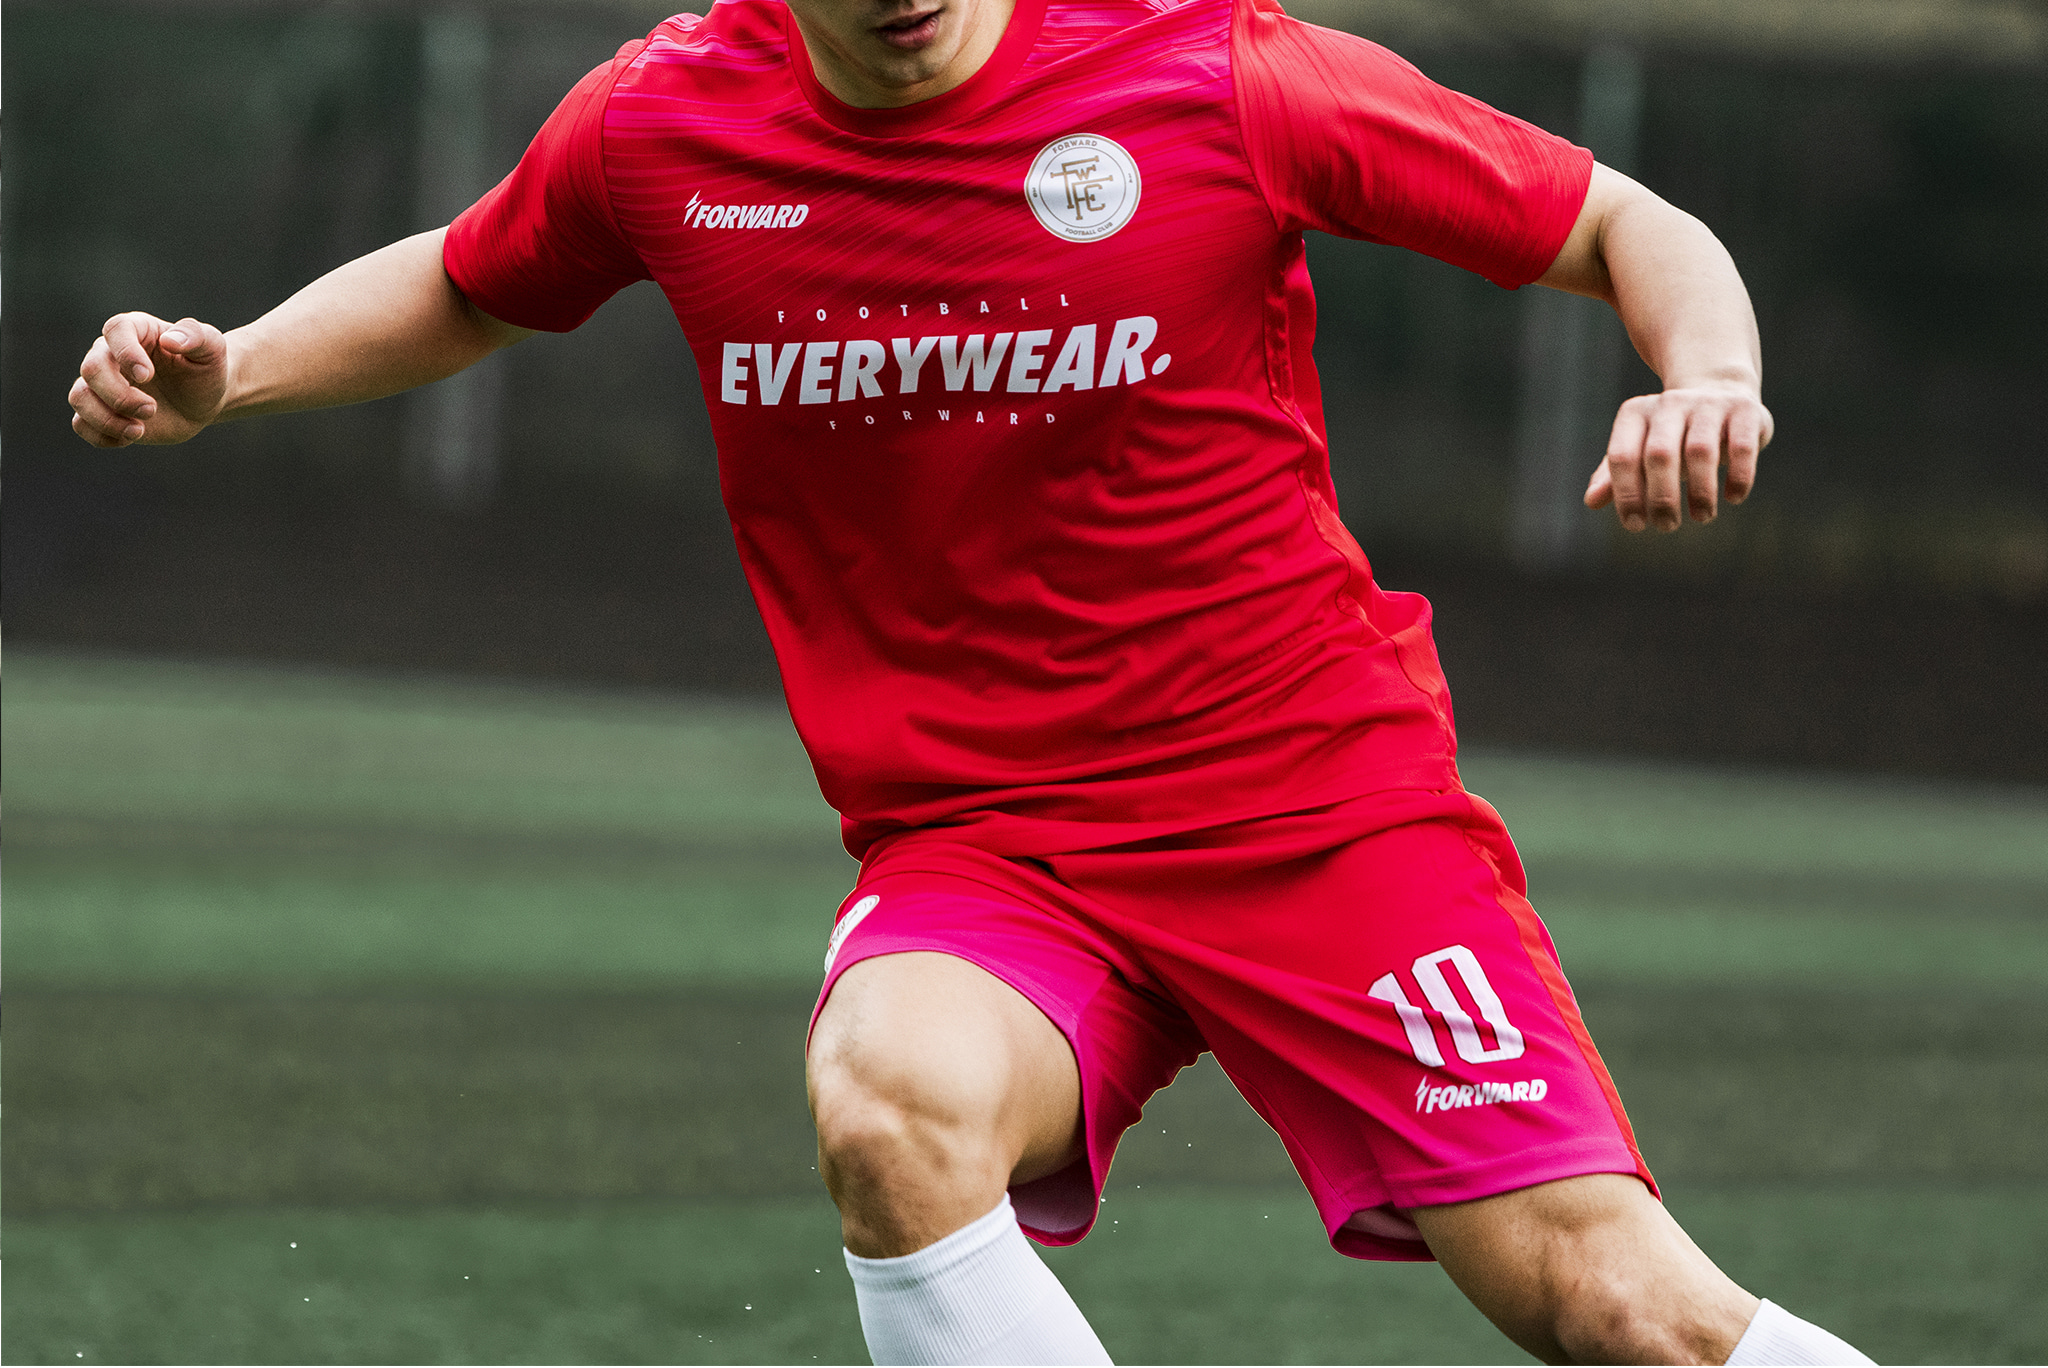 FORWARD FOOTBALL EVERYWEAR 19SS - CLIMAX